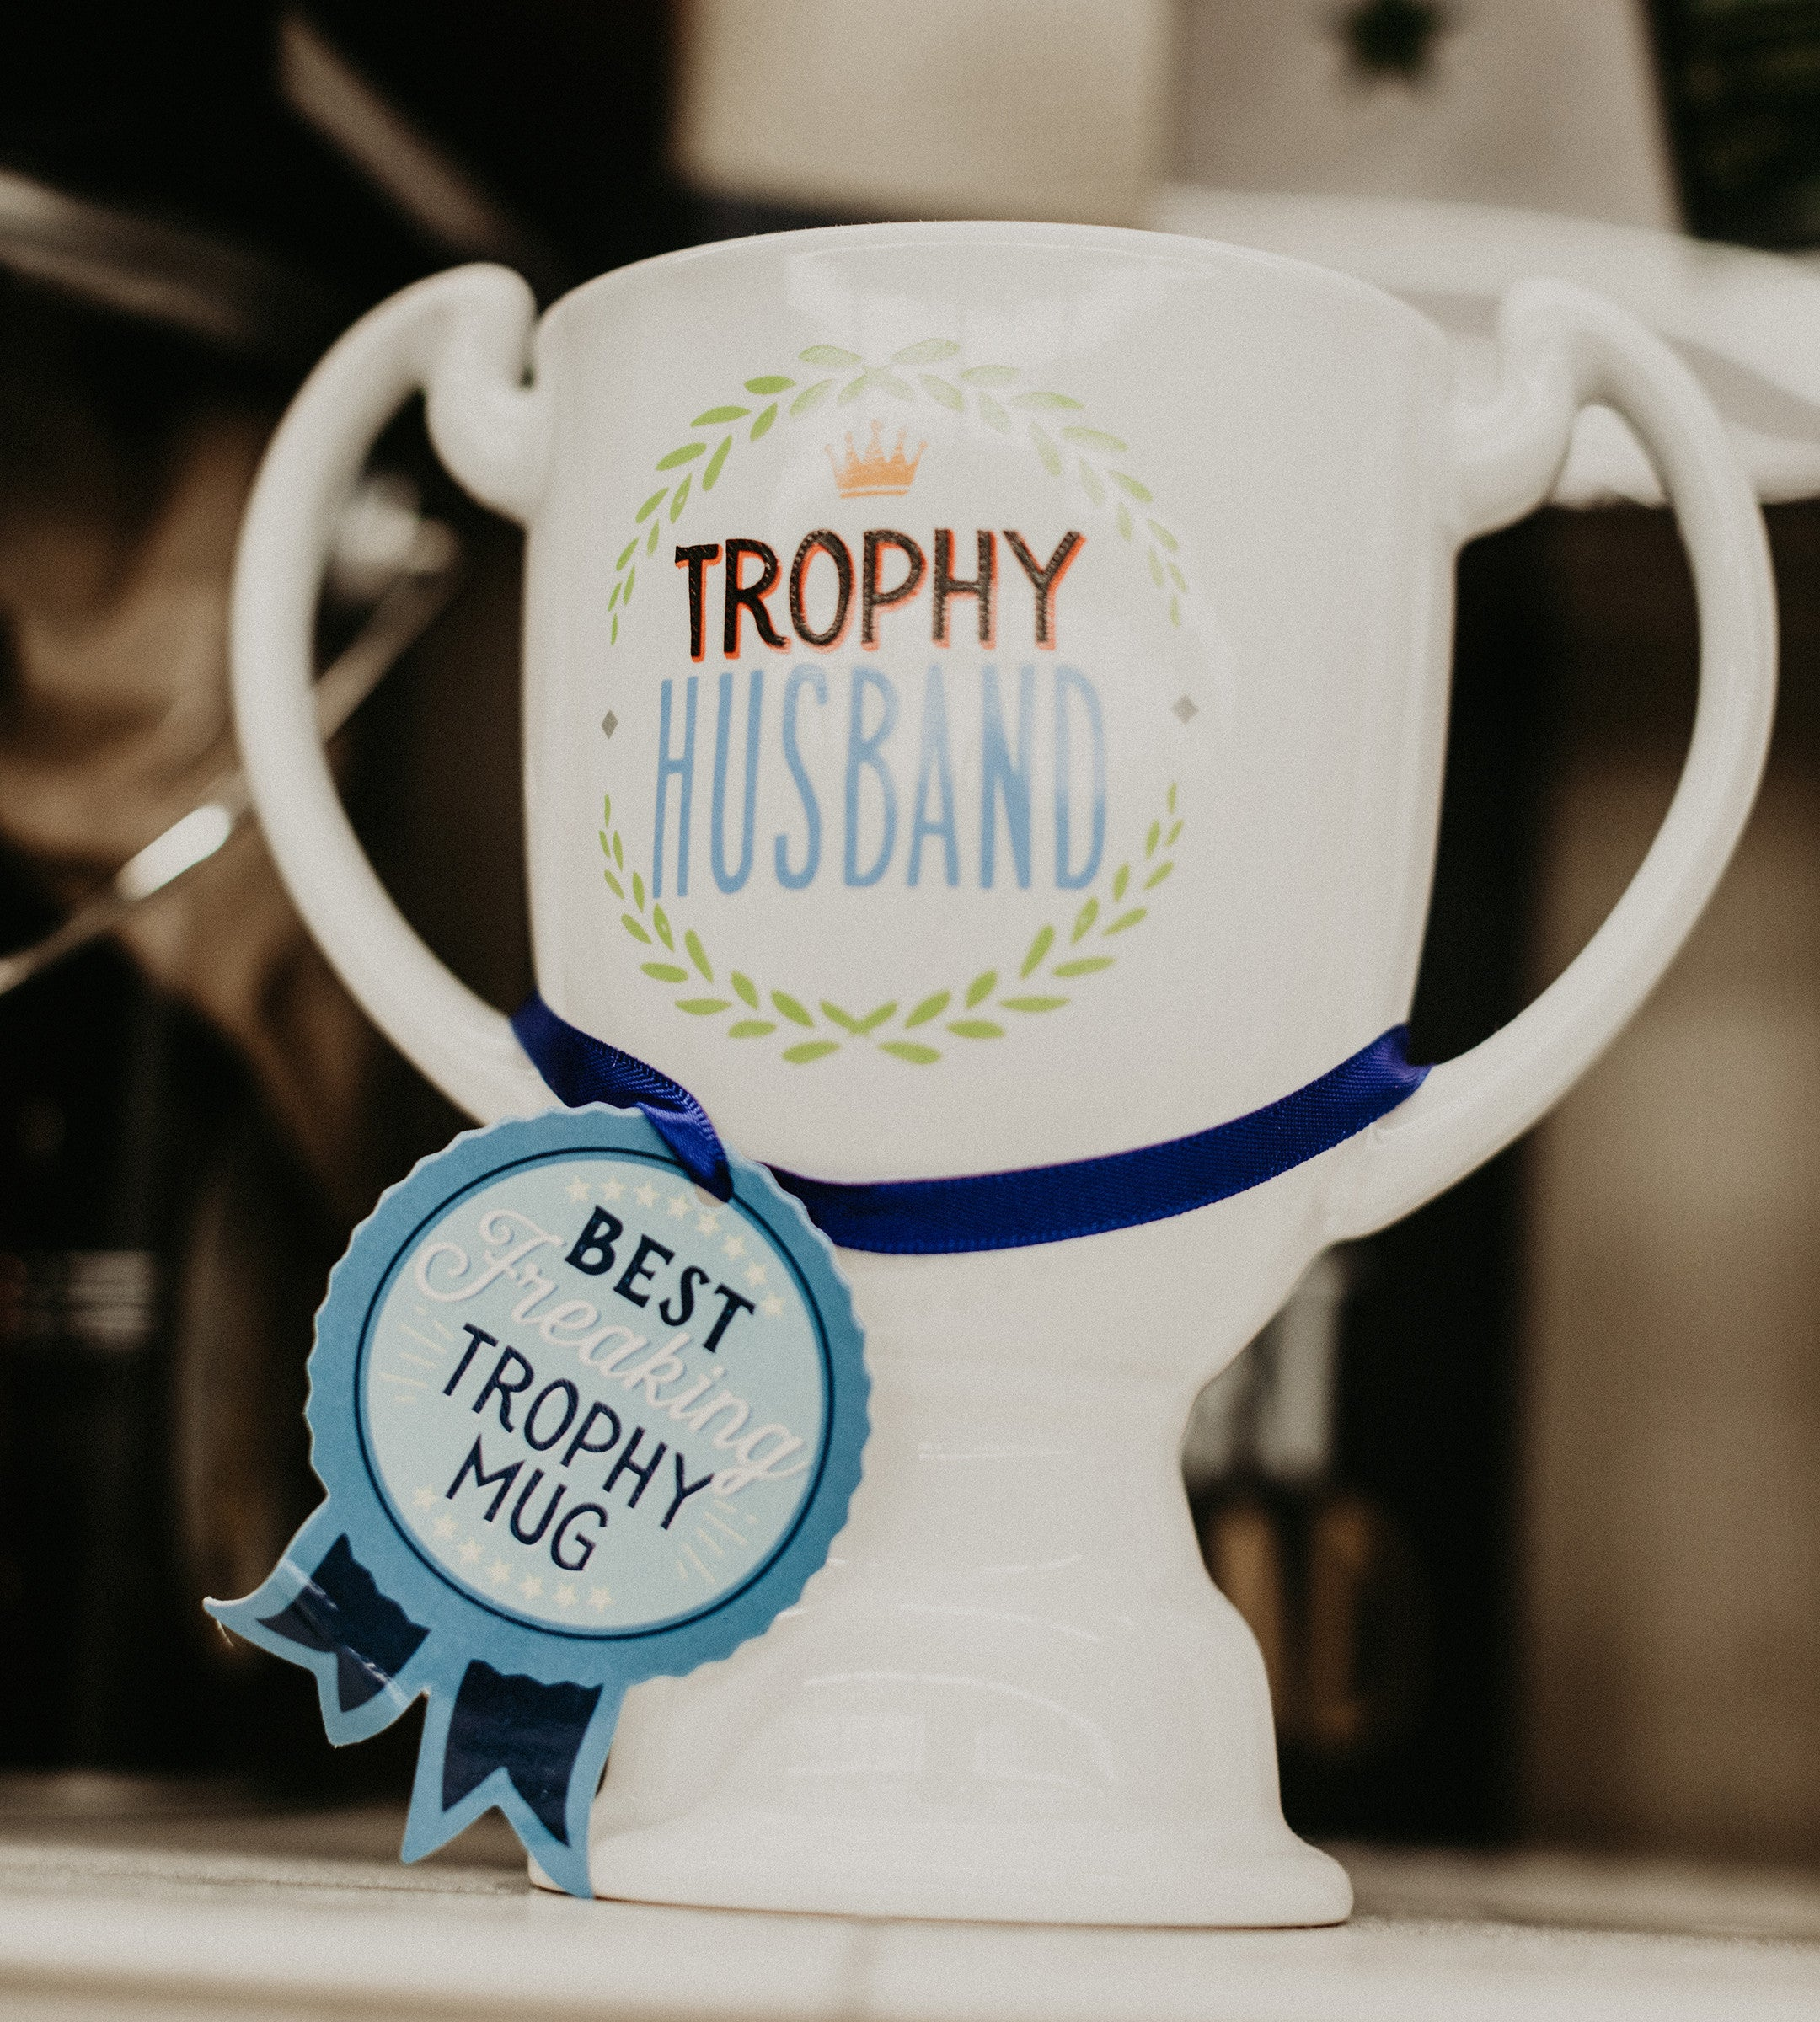 Trophy Husband Mug - Pharm Favorites by Economy Pharmacy